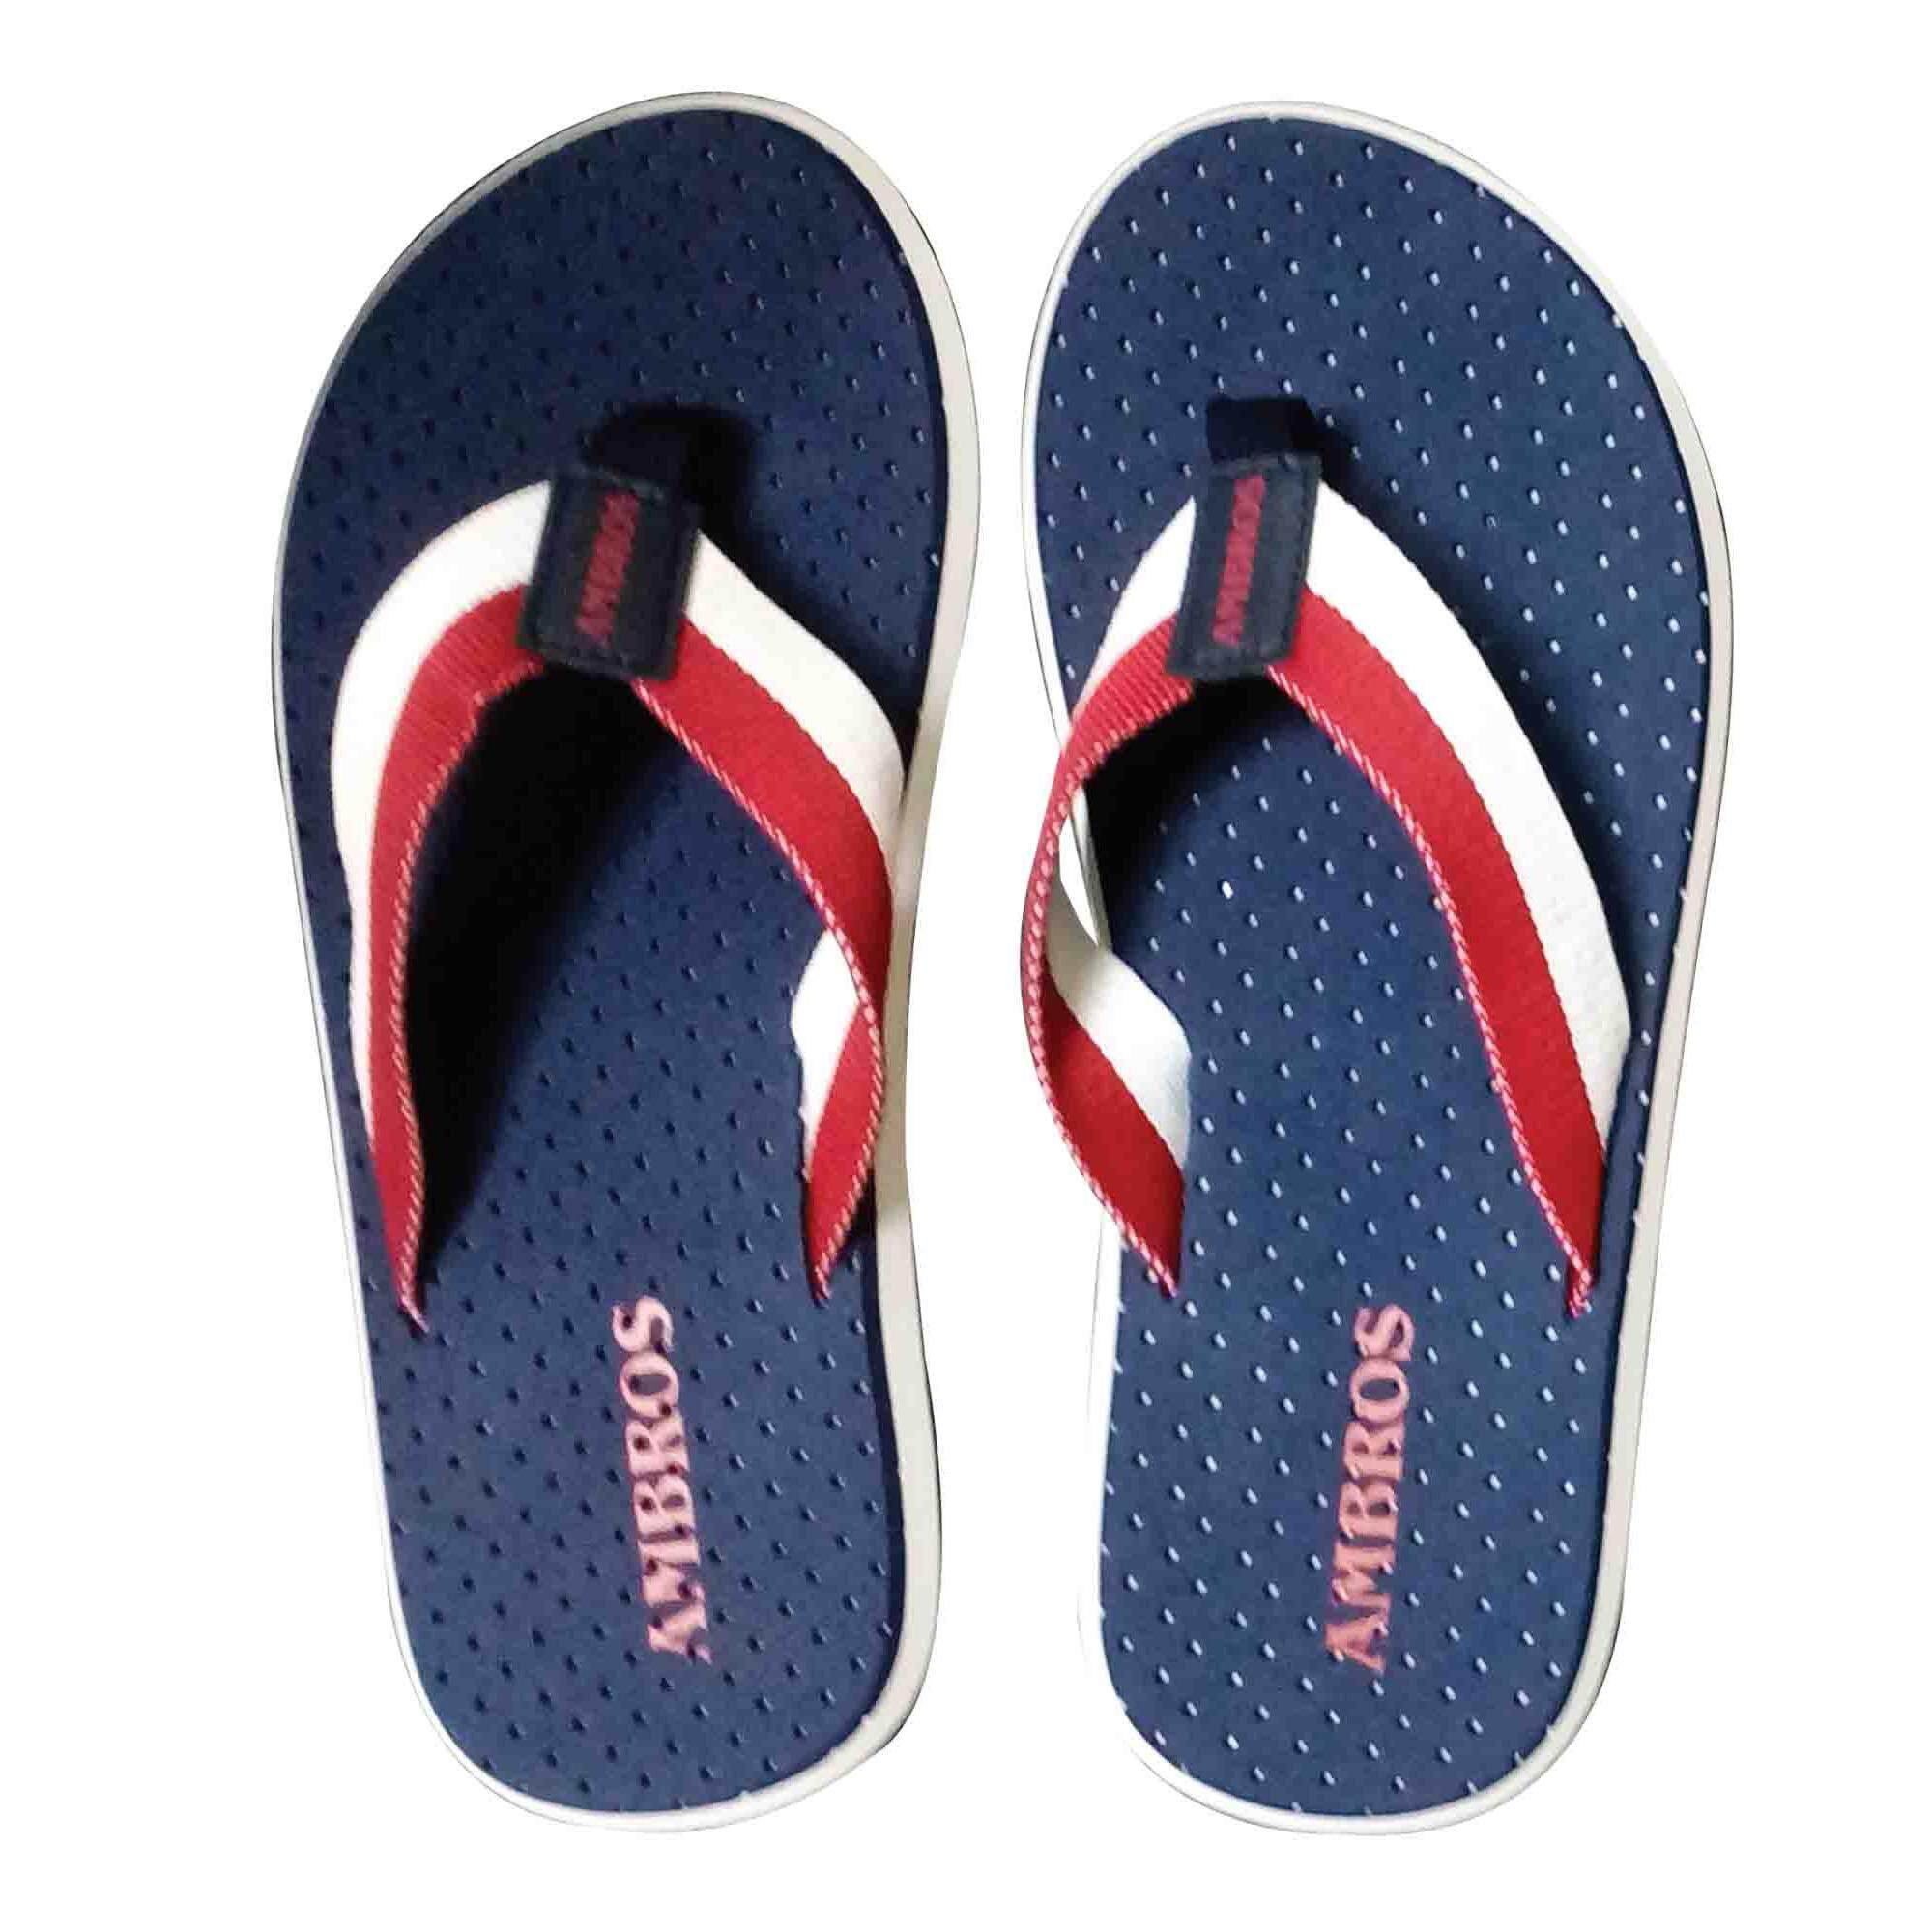 Ambros Ventilator Flip-Flop Sandals Slippers - Navy/red By Ambros.